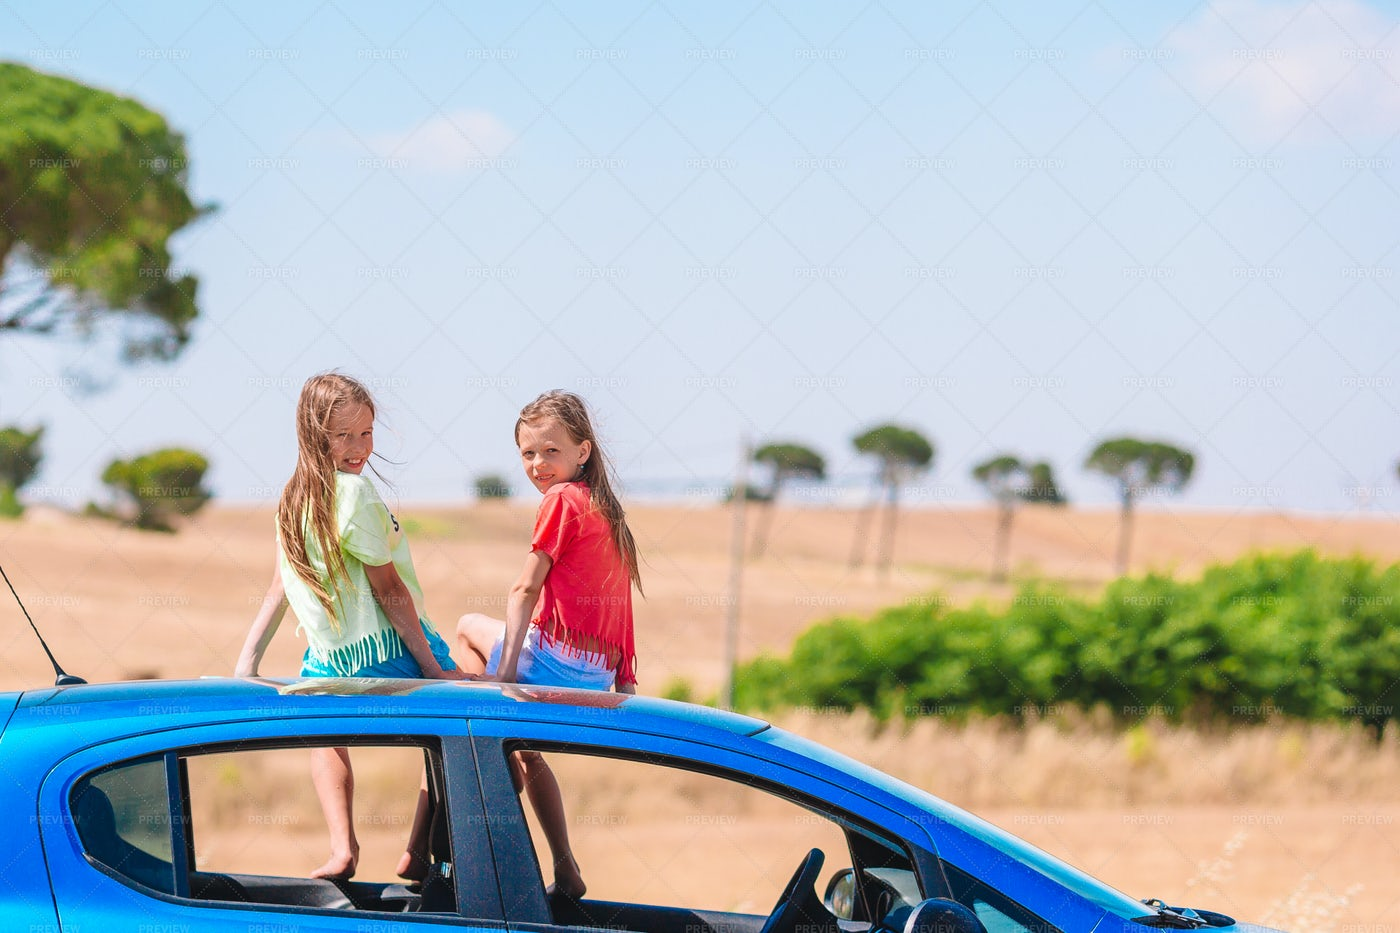 Little Girls On The Car Roof: Stock Photos